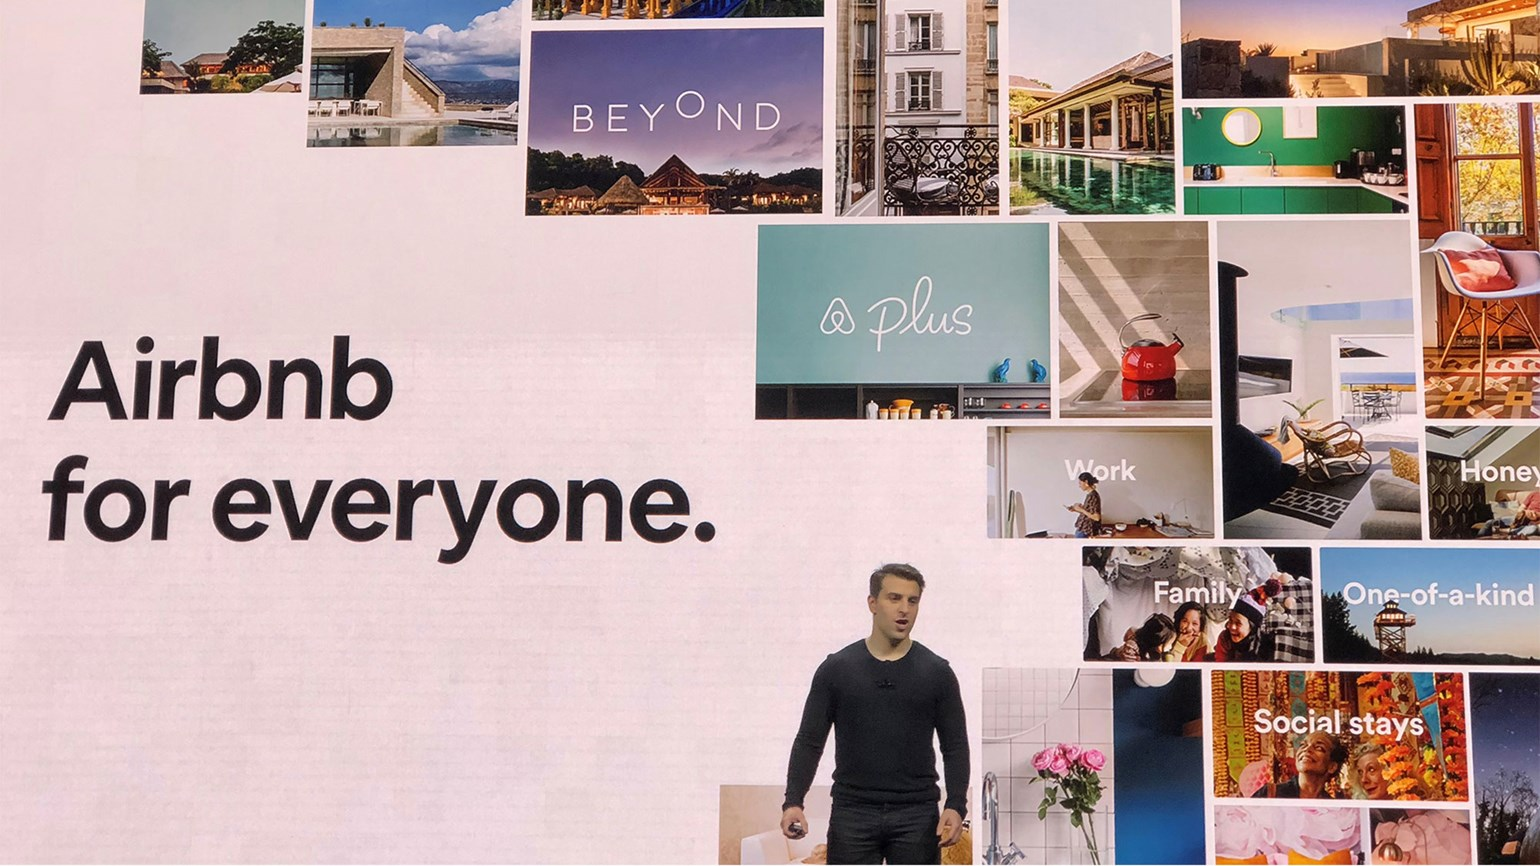 Airbnb introduces deluxe products, expanded listings and loyalty program